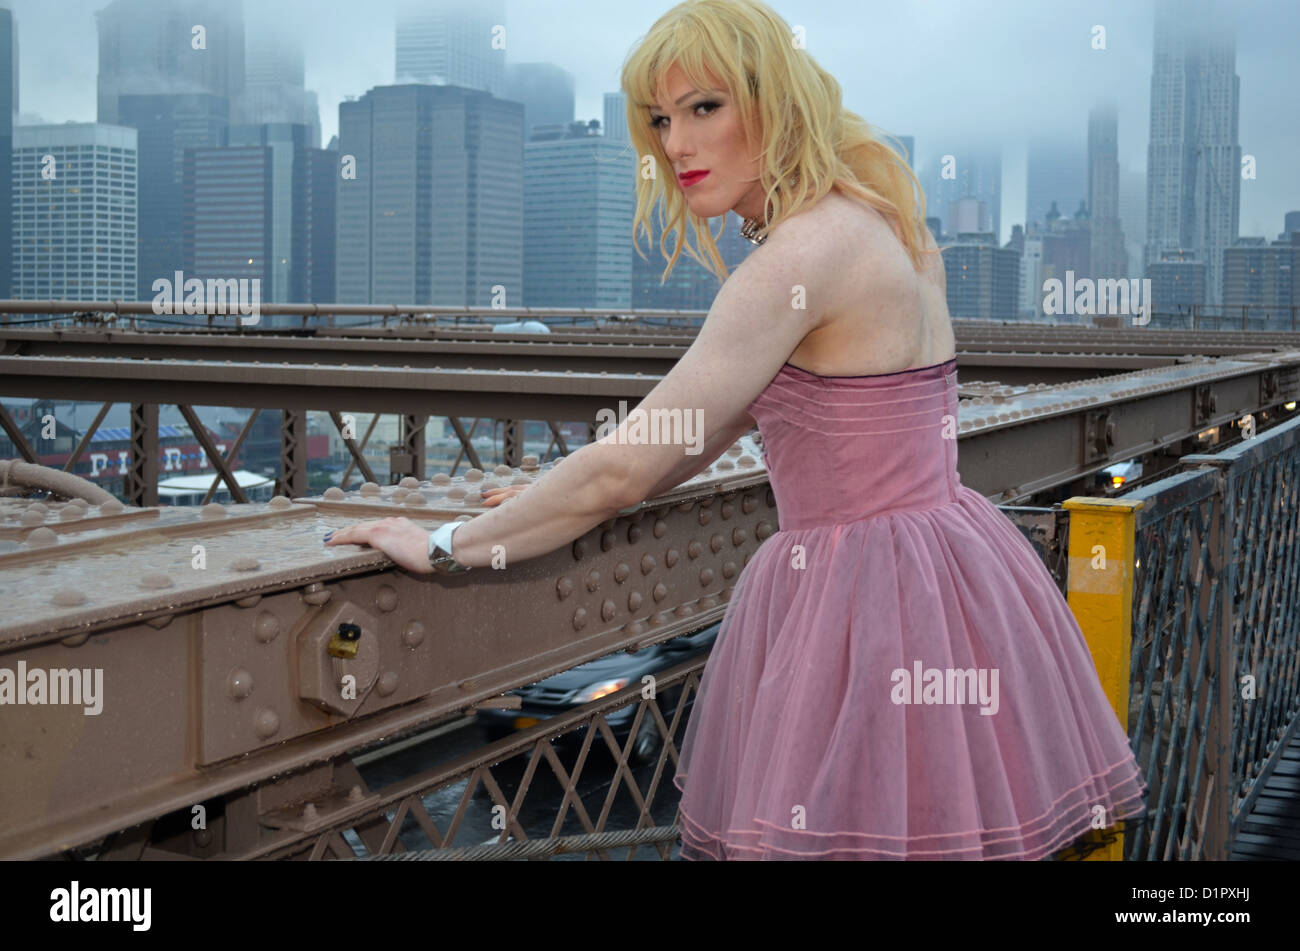 A man in a dress photographed in the rain on the Brooklyn Bridge in New York City - Stock Image